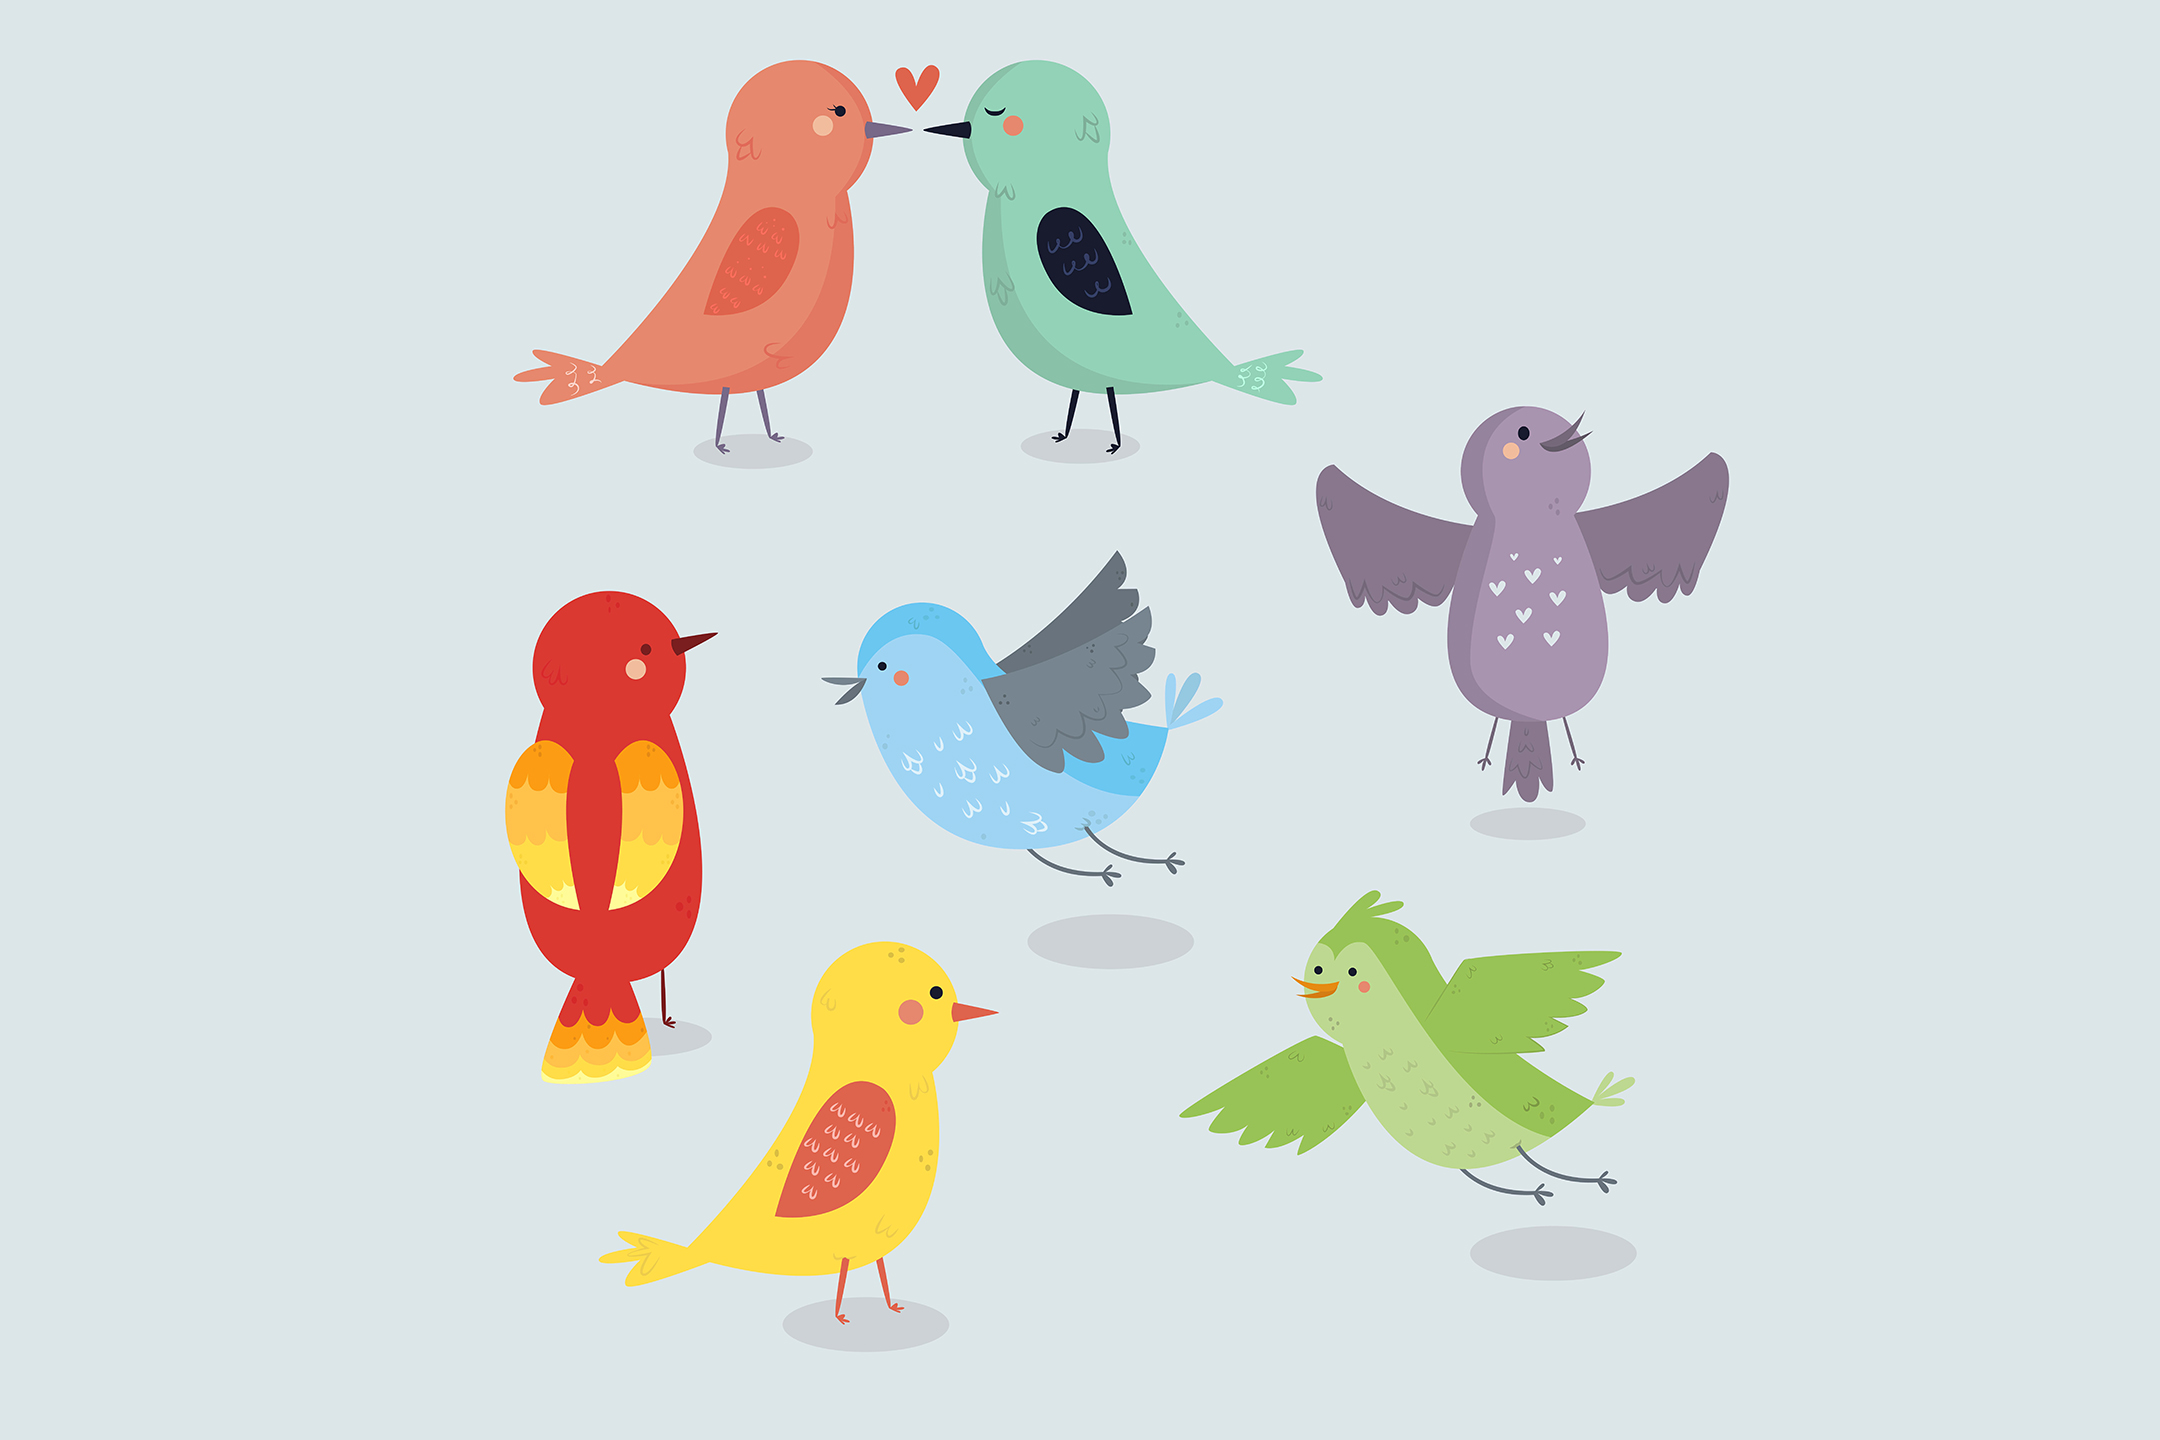 Download Free Bird Collection Hand Drawn Graphic By Aprlmp276 Creative Fabrica for Cricut Explore, Silhouette and other cutting machines.